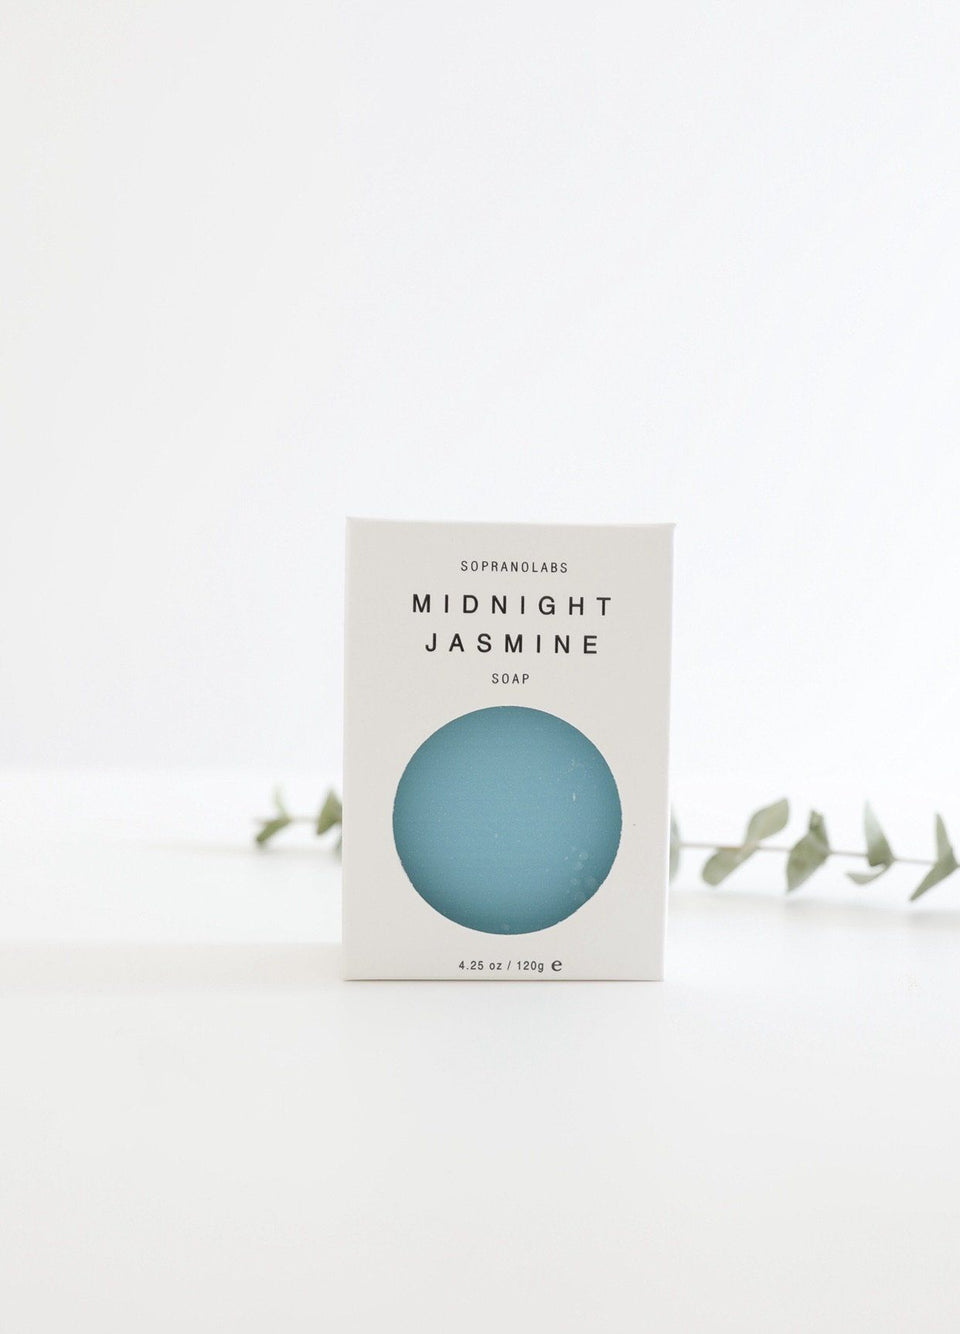 Midnight Jasmine Vegan Soap. Gift for her